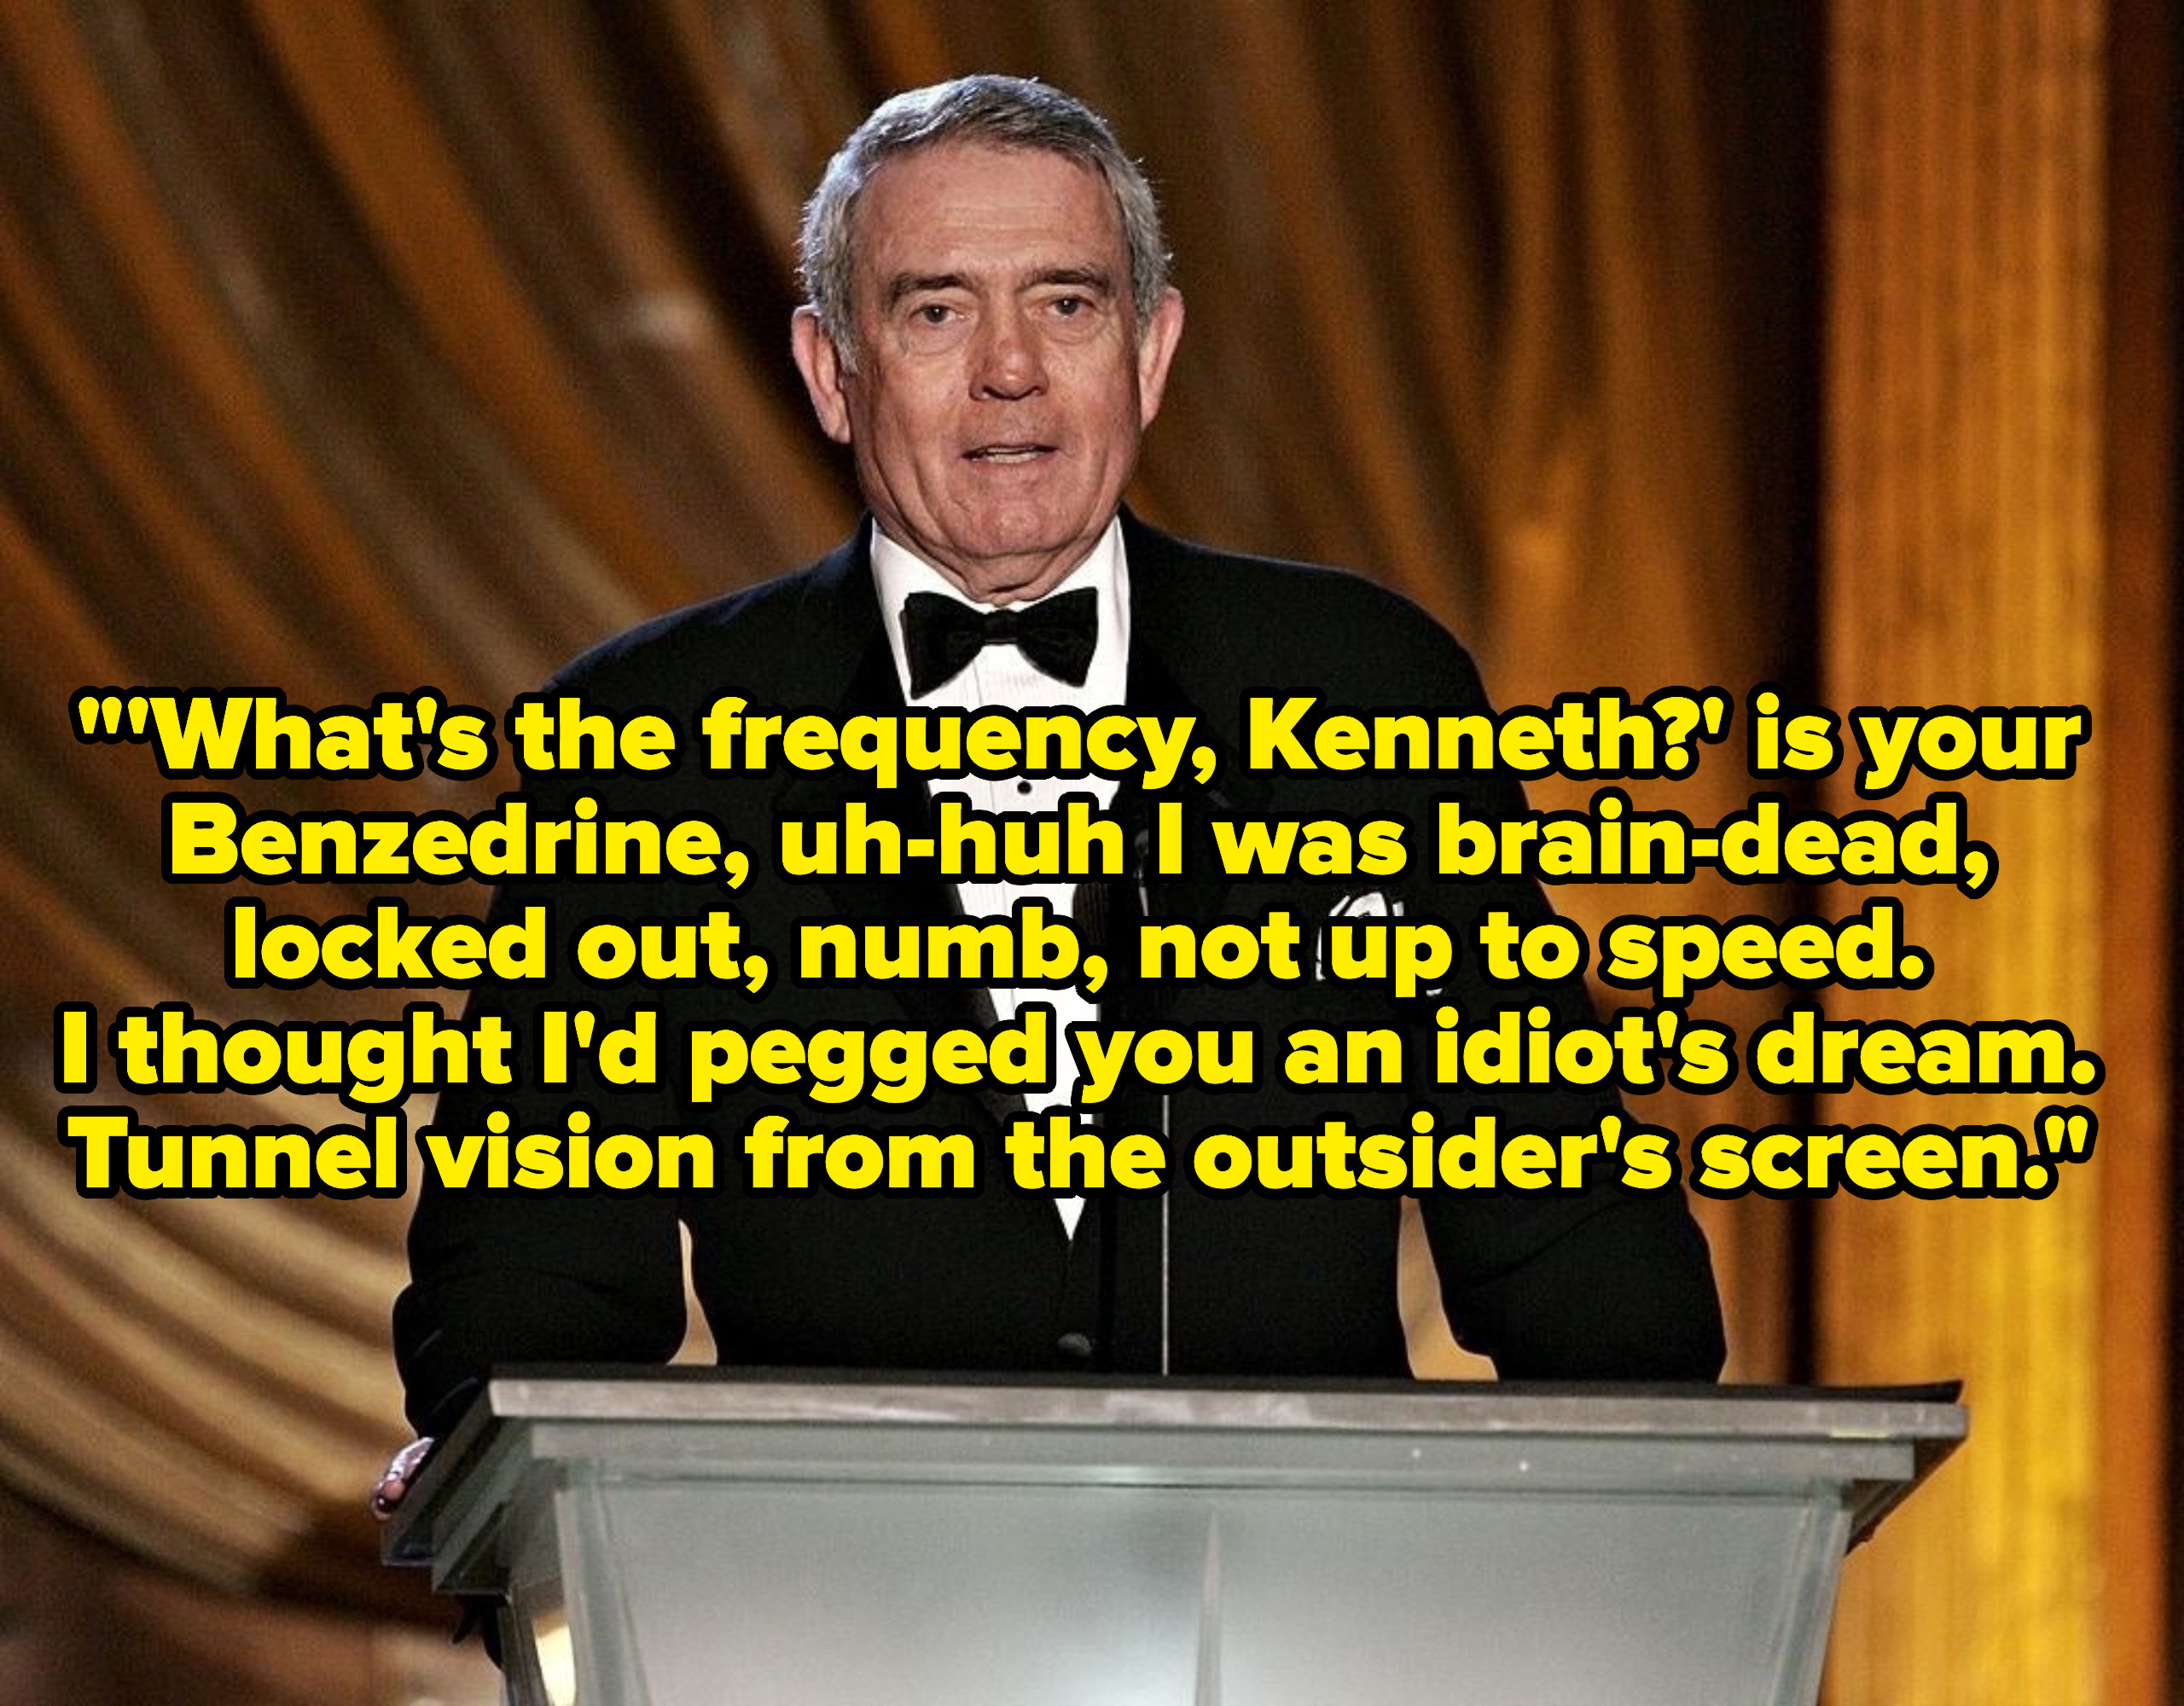 Dan Rather speaking at a podium, captioned with the lyrics to the song.